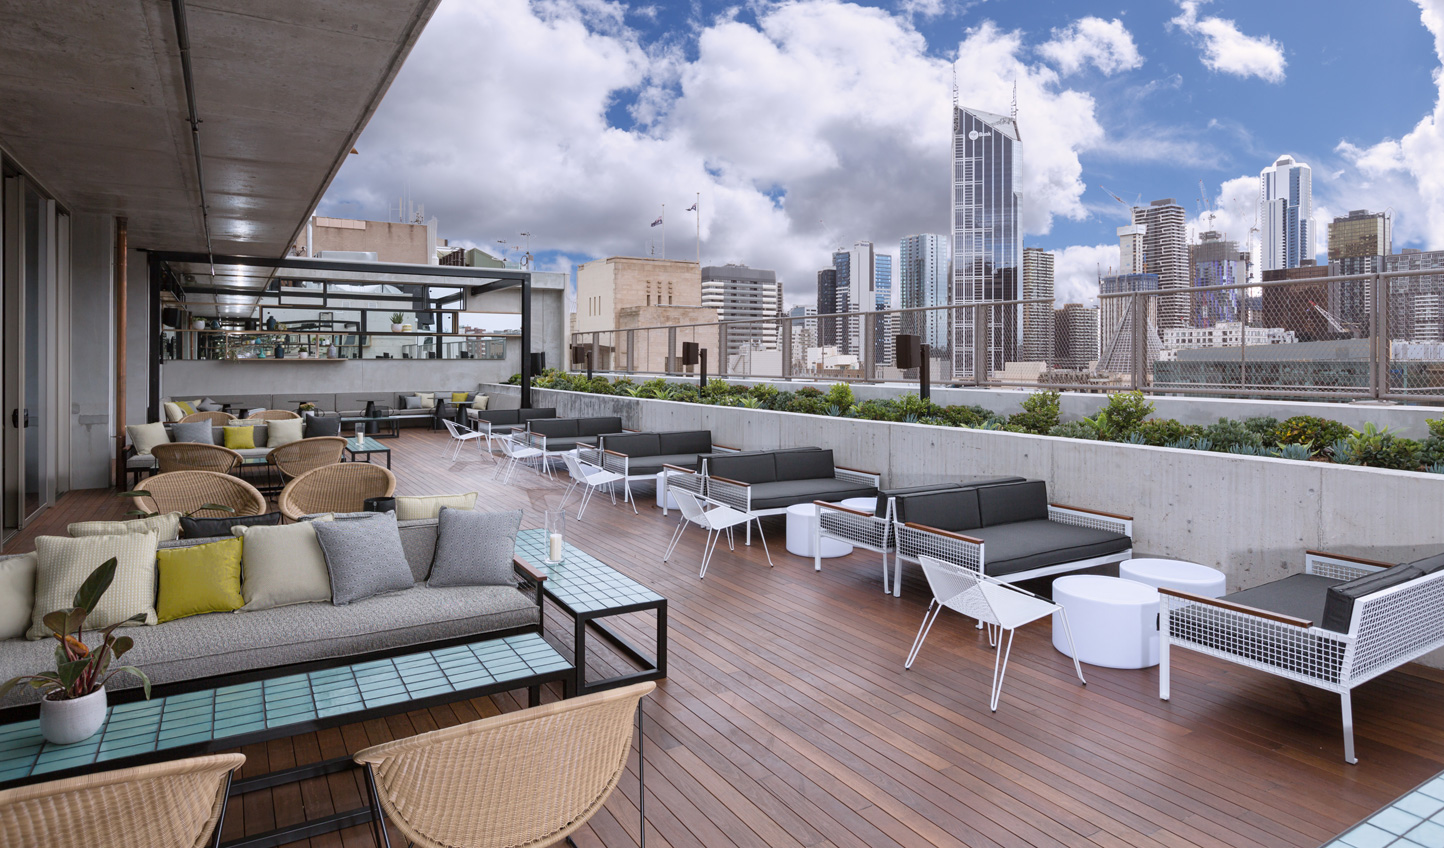 Soak in the Melbourne skyline from the rooftop bar